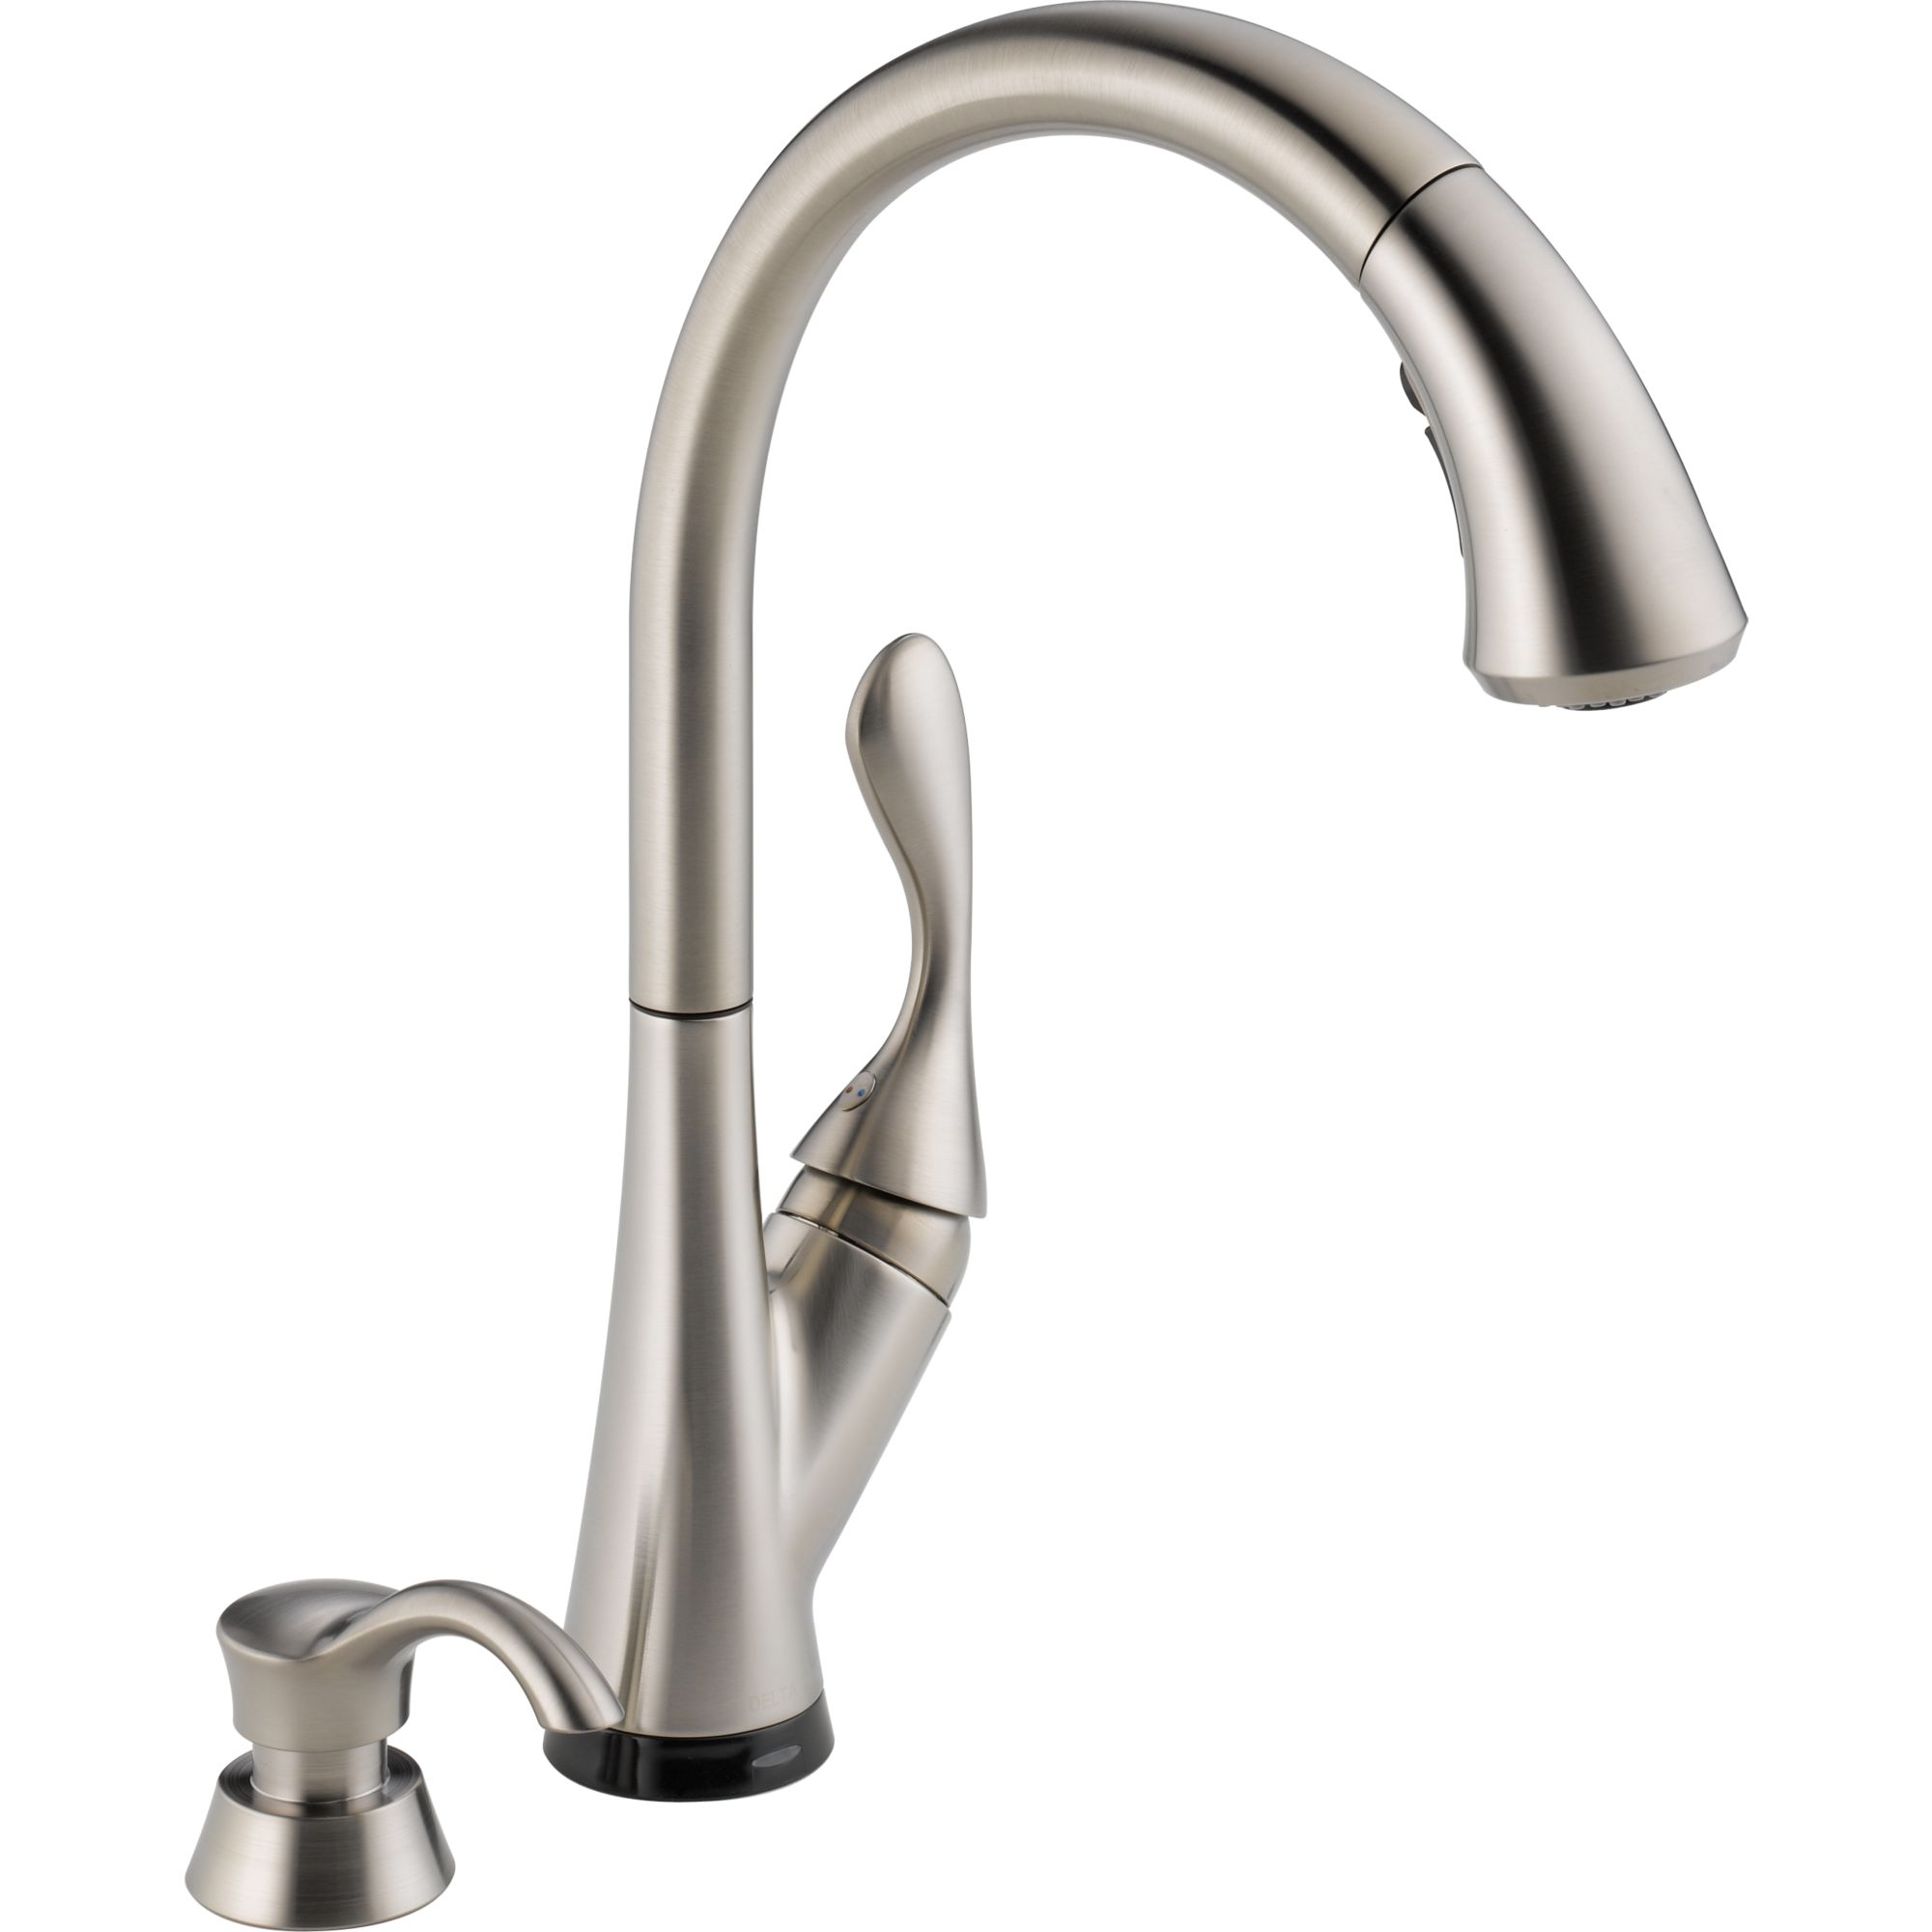 delta savile stainless kitchen faucet delta savile stainless kitchen faucet deltafaucetreview complete selection of kitchen faucets 2000 x 2000